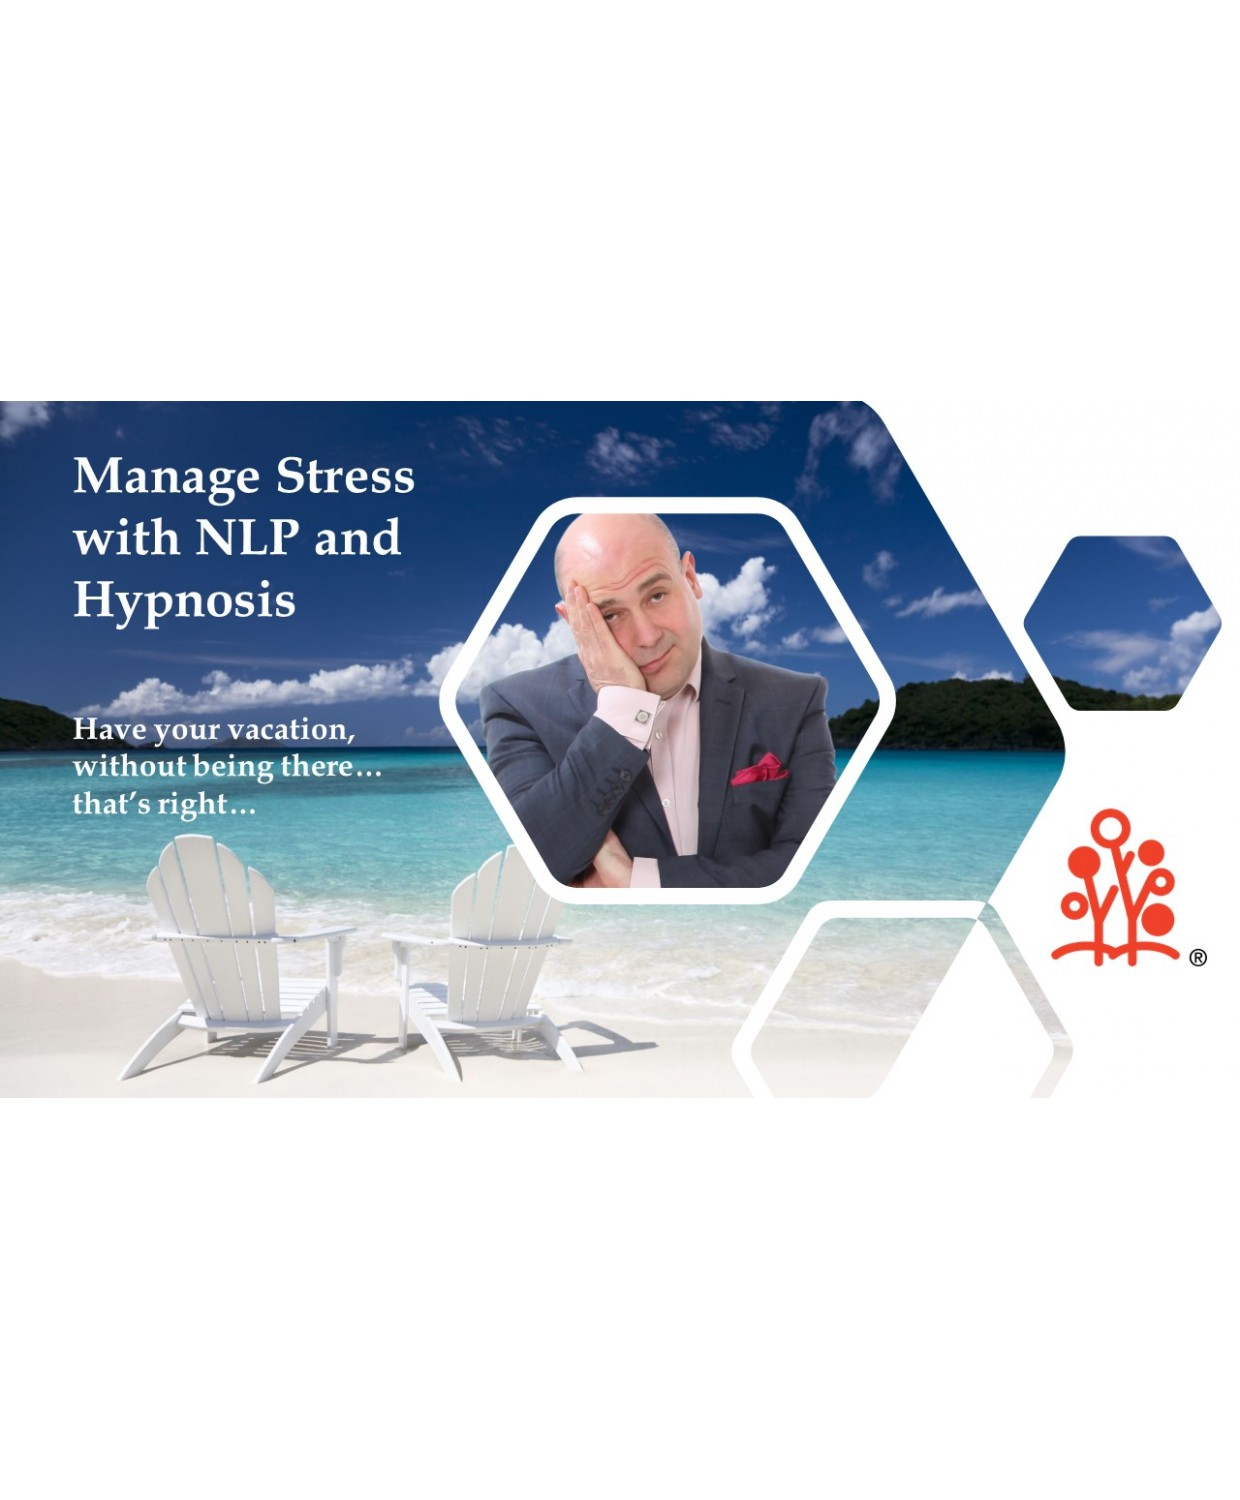 Manage Stress with NLP and Hypnosis